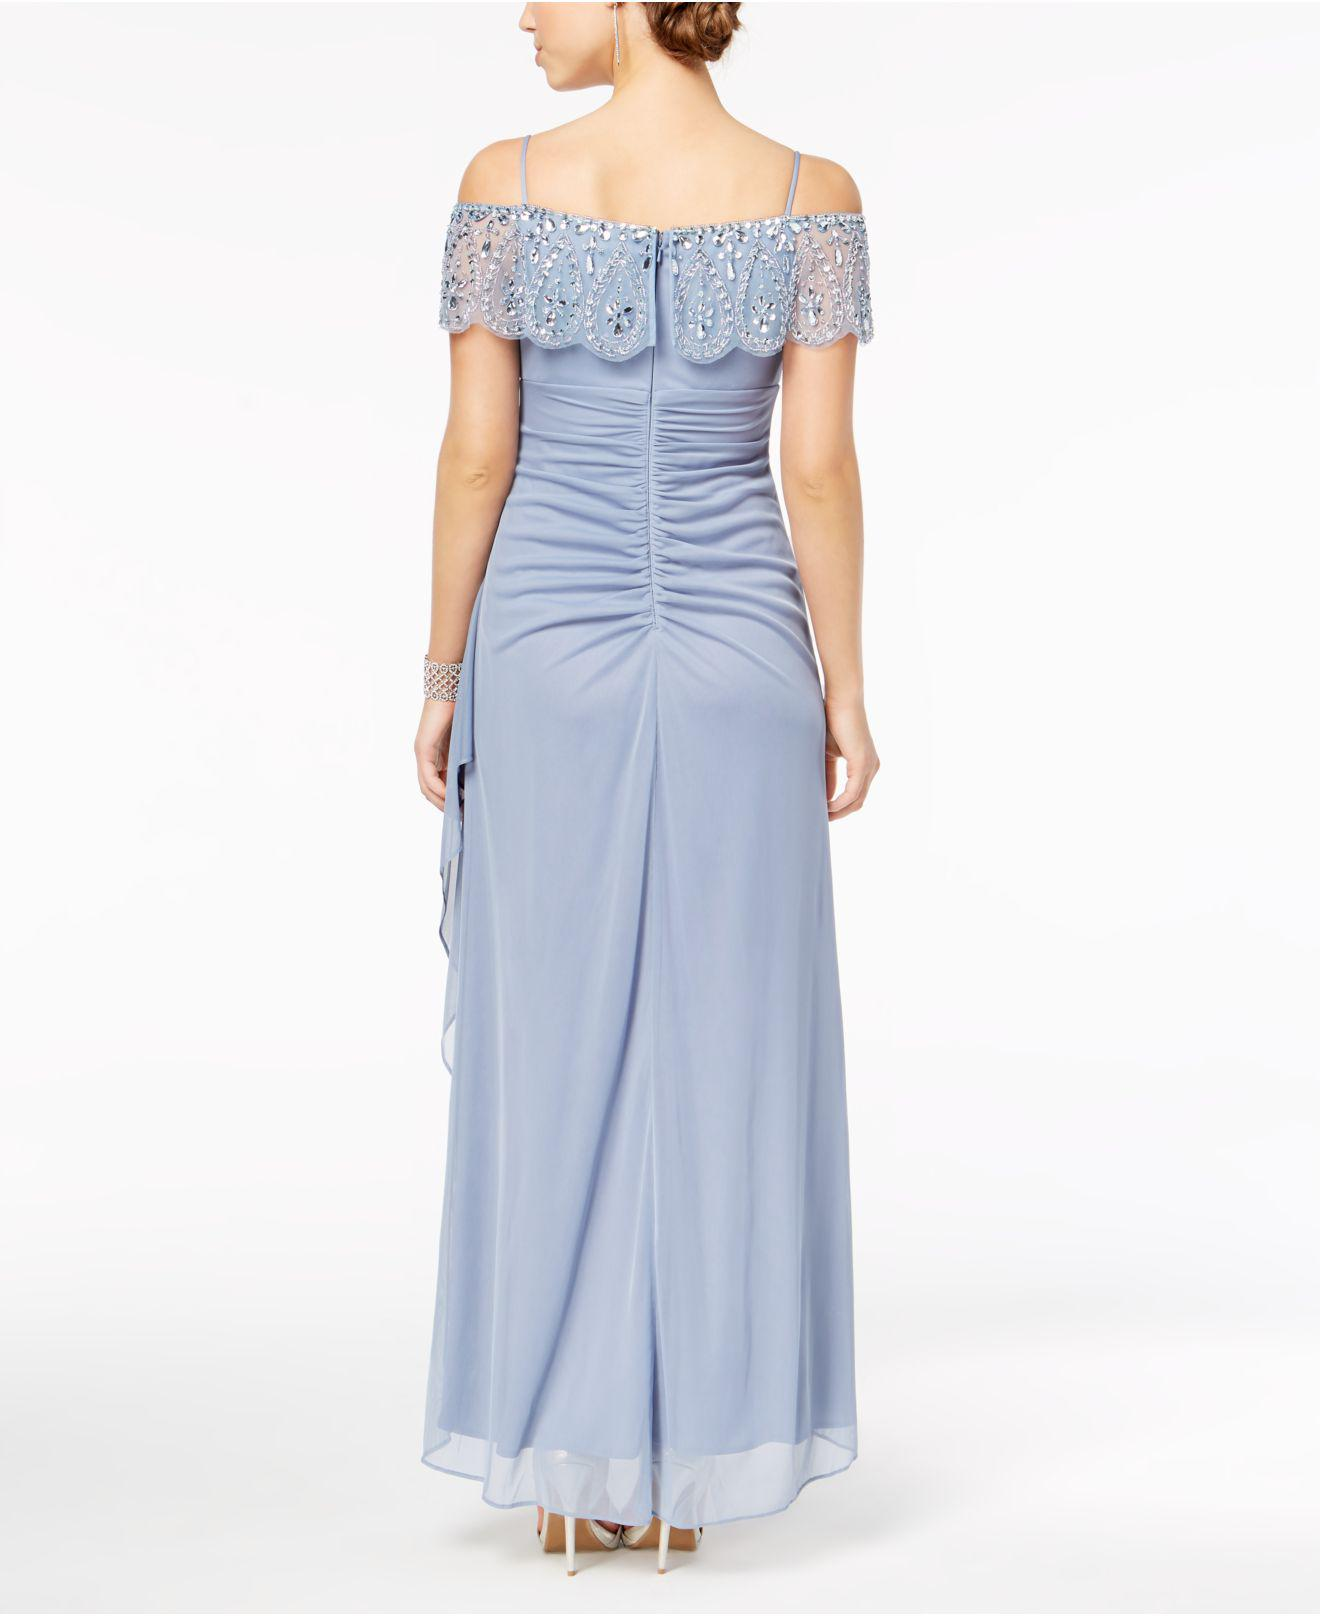 417966b5 Xscape Petite Embellished Off-the-shoulder Gown in Blue - Lyst